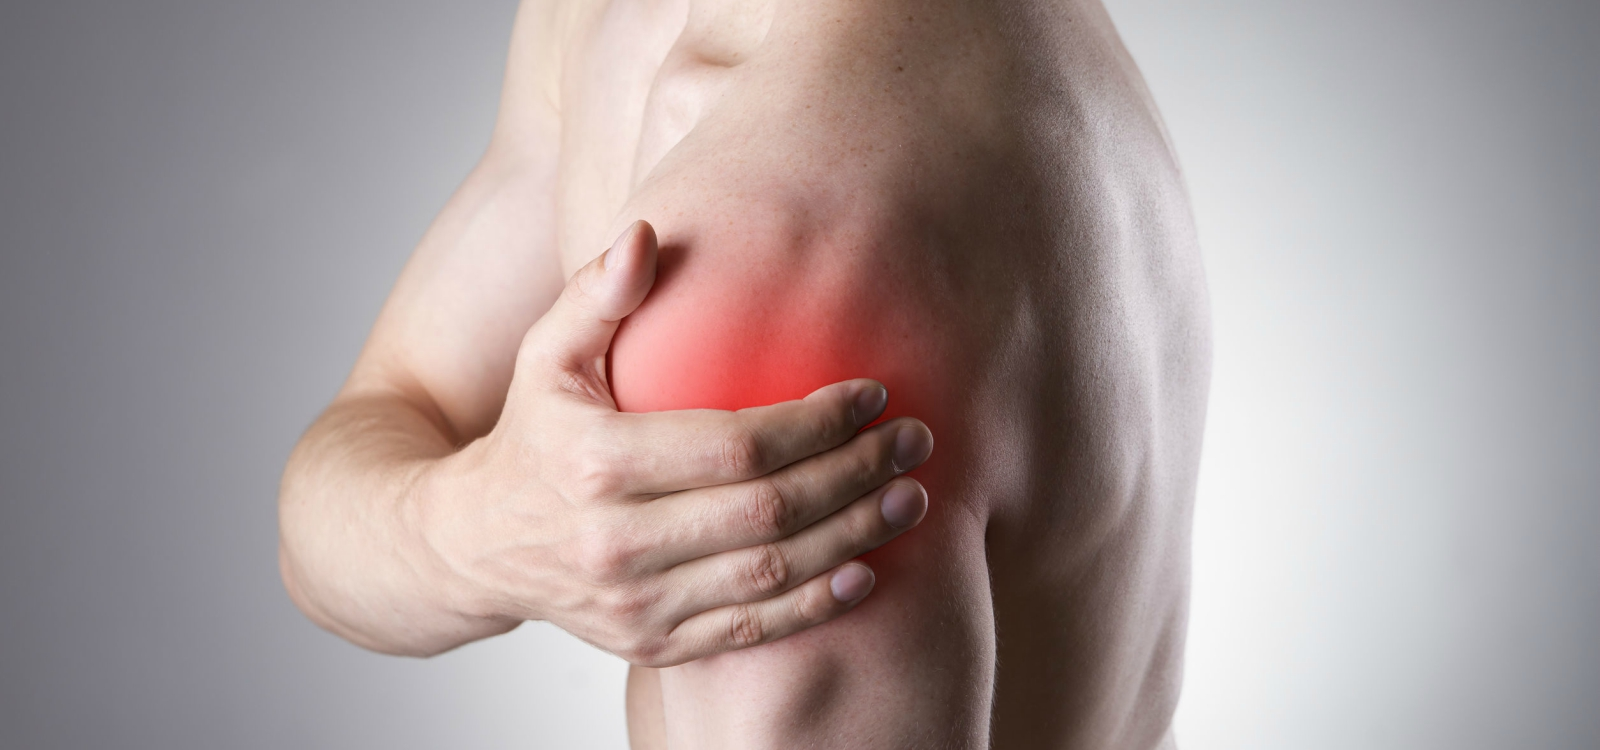 The 7 Best Ways to Fix and Prevent Shoulder Pain